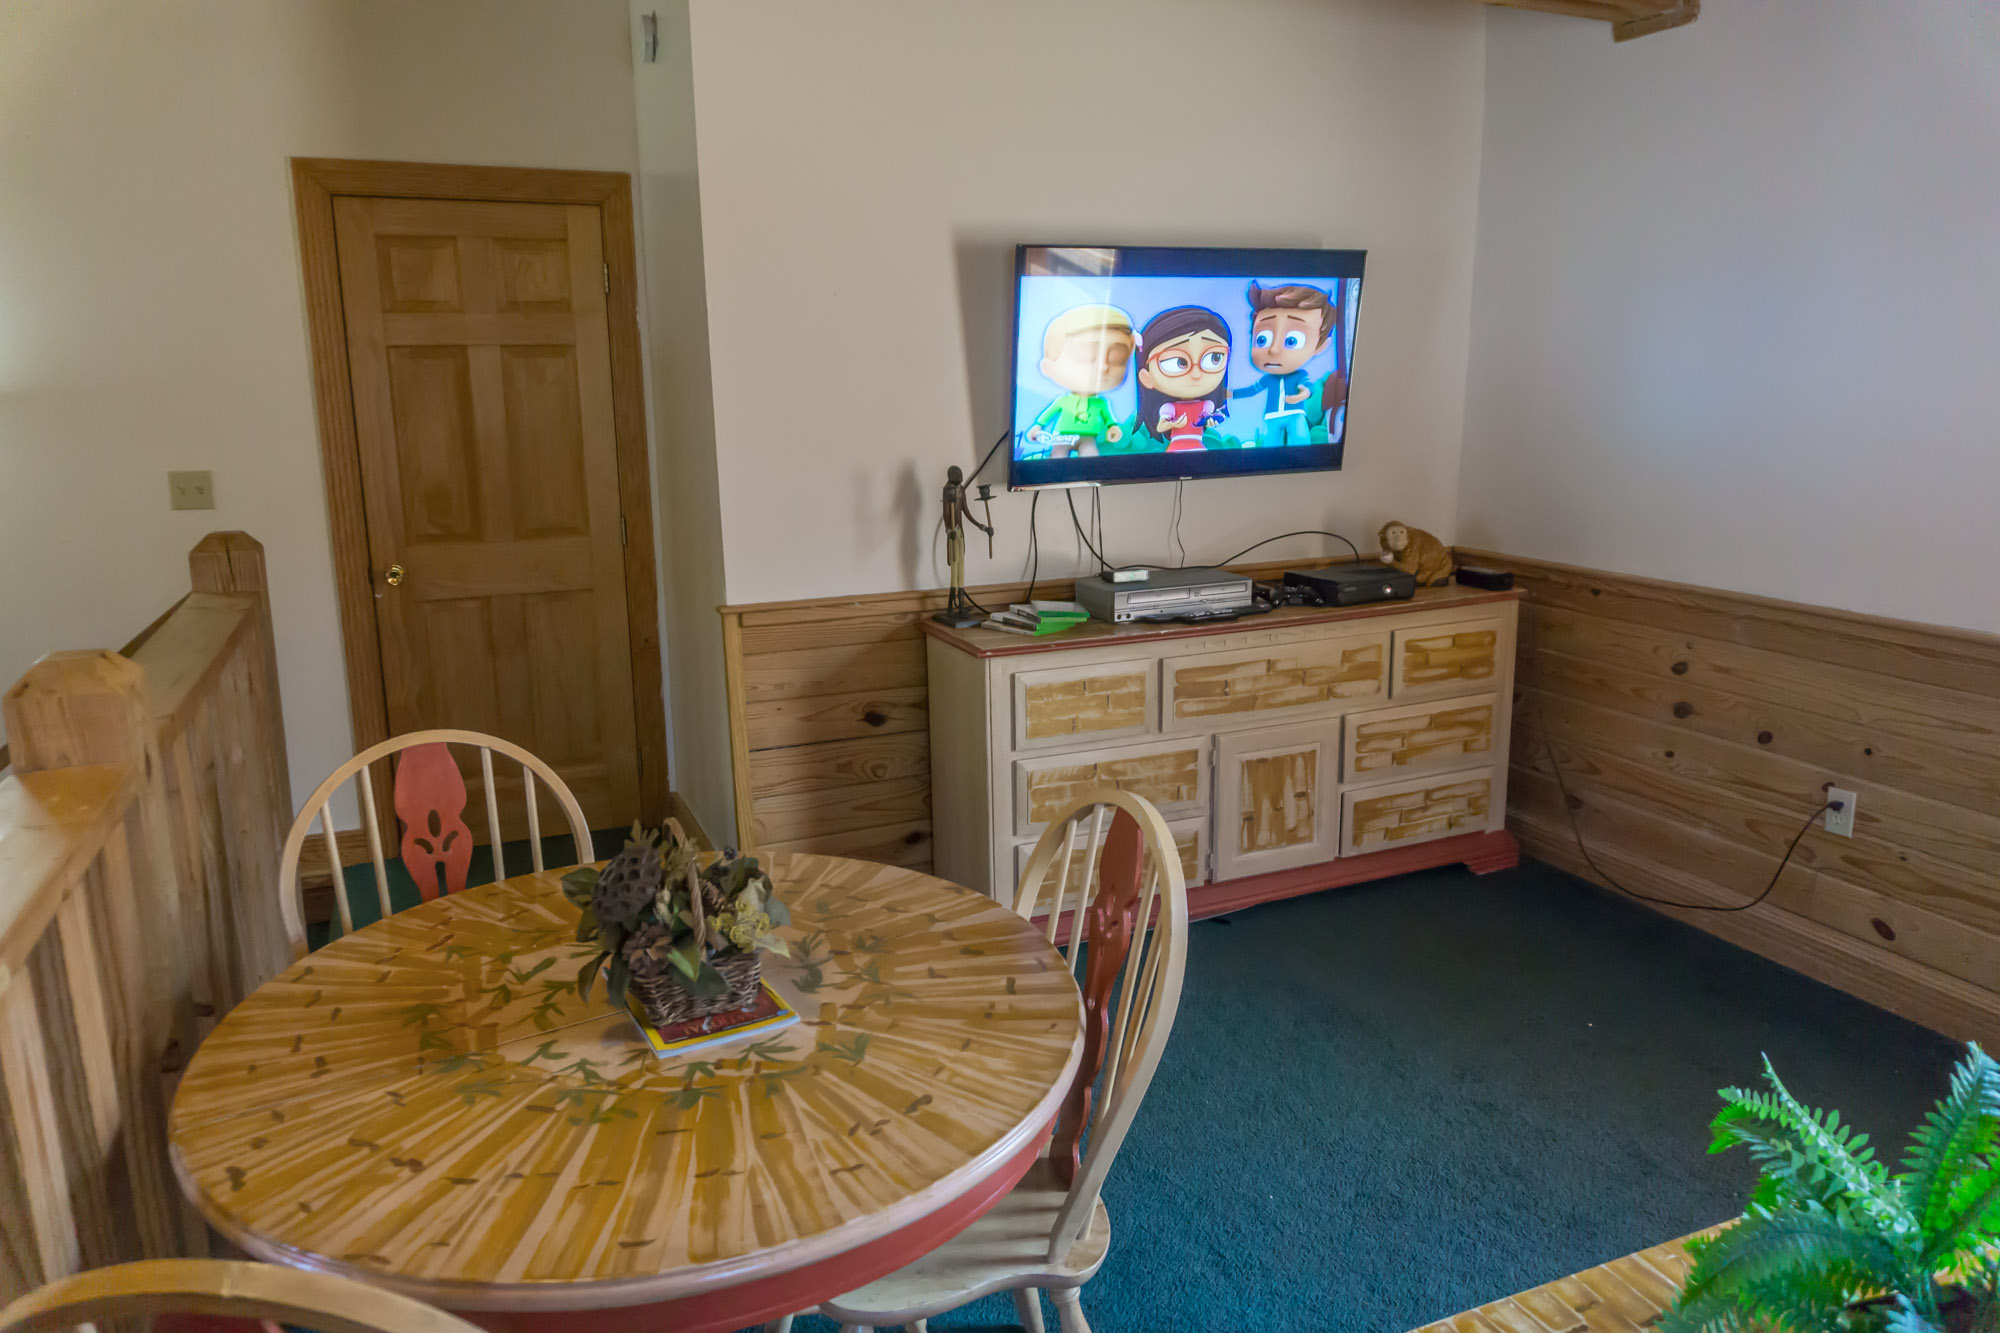 TV and table in loft